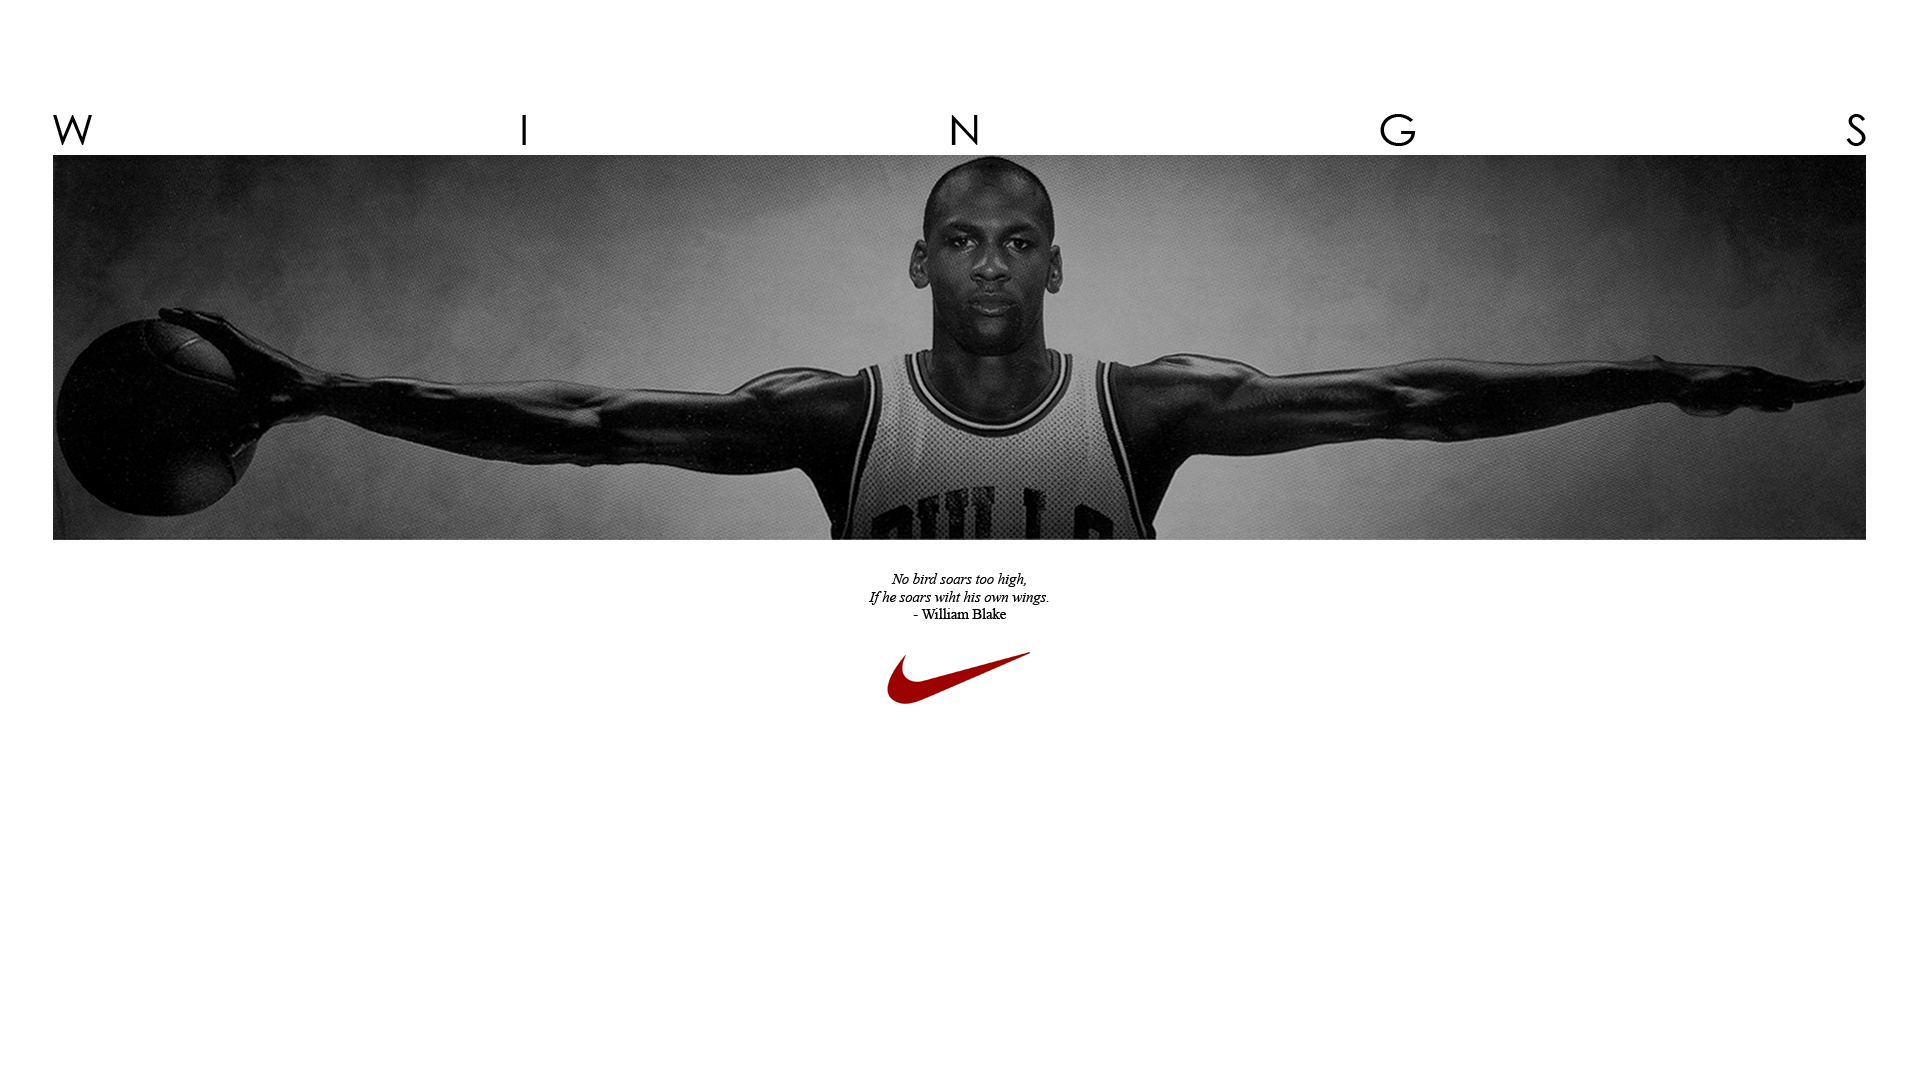 b4acf6df176 Another iconic Michael Jordan ad for Nike. It shows how long Jordan's wing  span is and why he is called